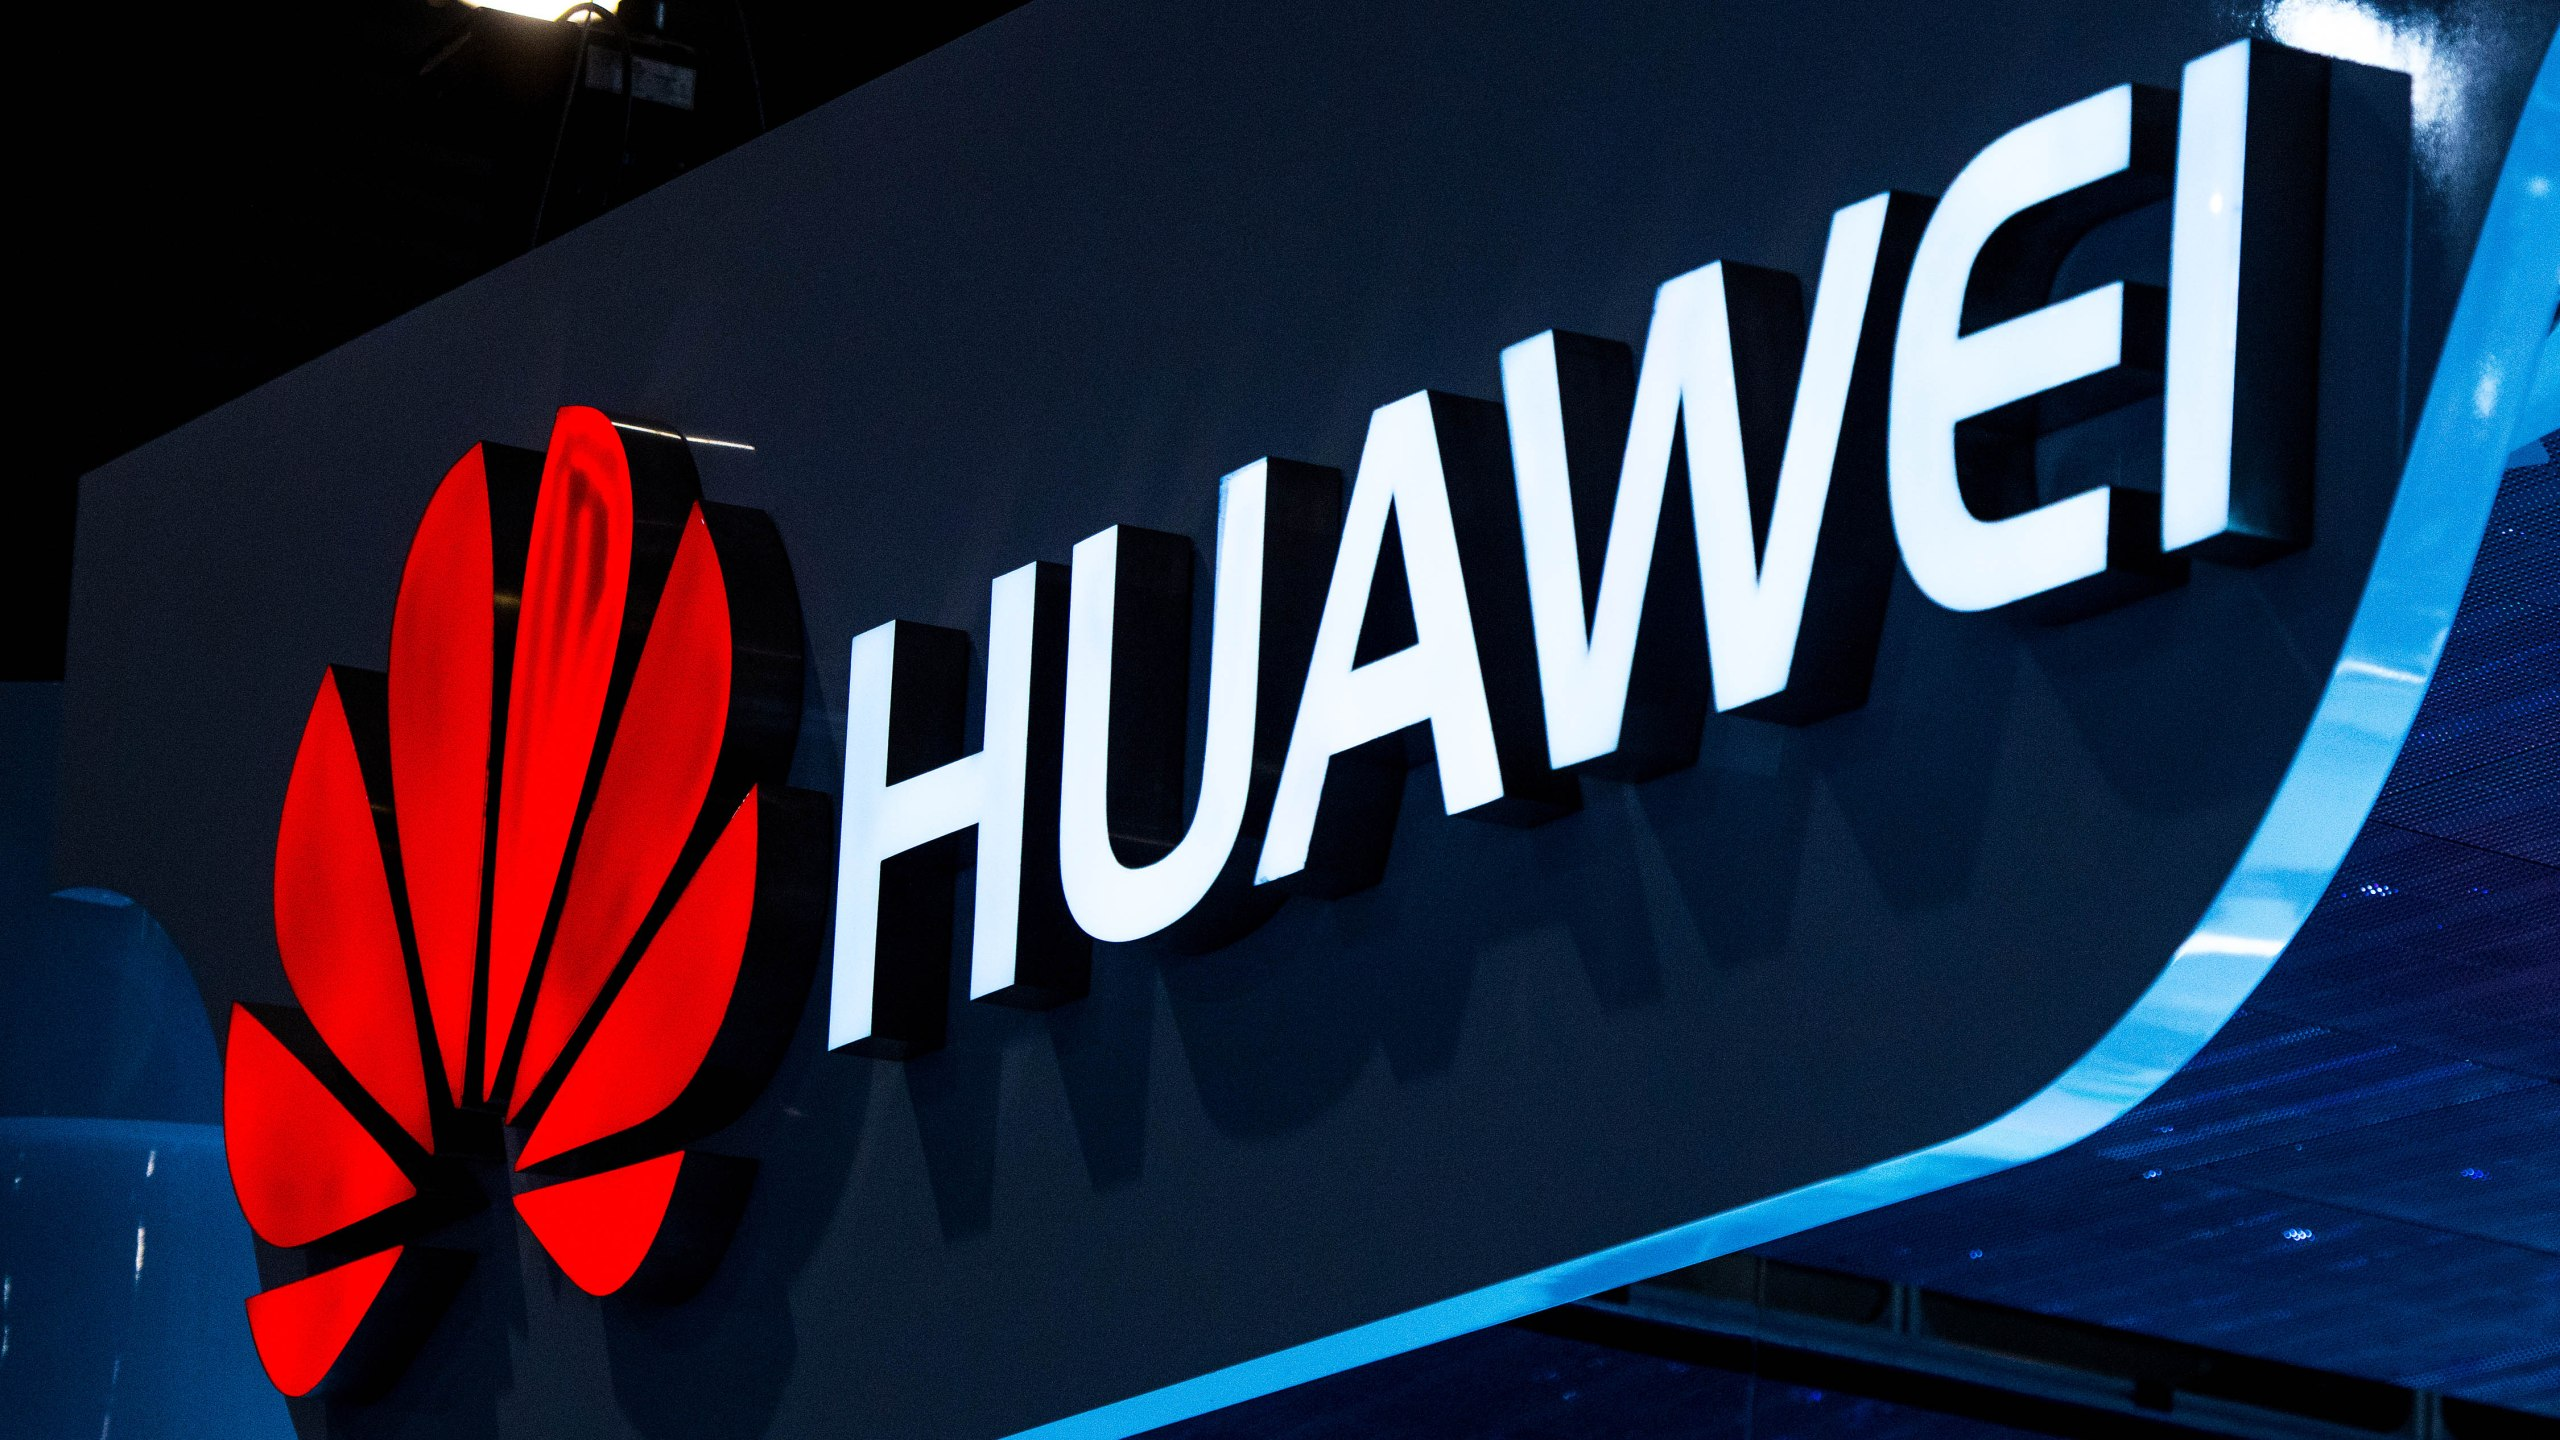 A logo sits illuminated outside the Huawei pavilion during the second day of the Mobile World Congress 2015 at the Fira Gran Via complex on March 3, 2015. (Credit: David Ramos/Getty Images)